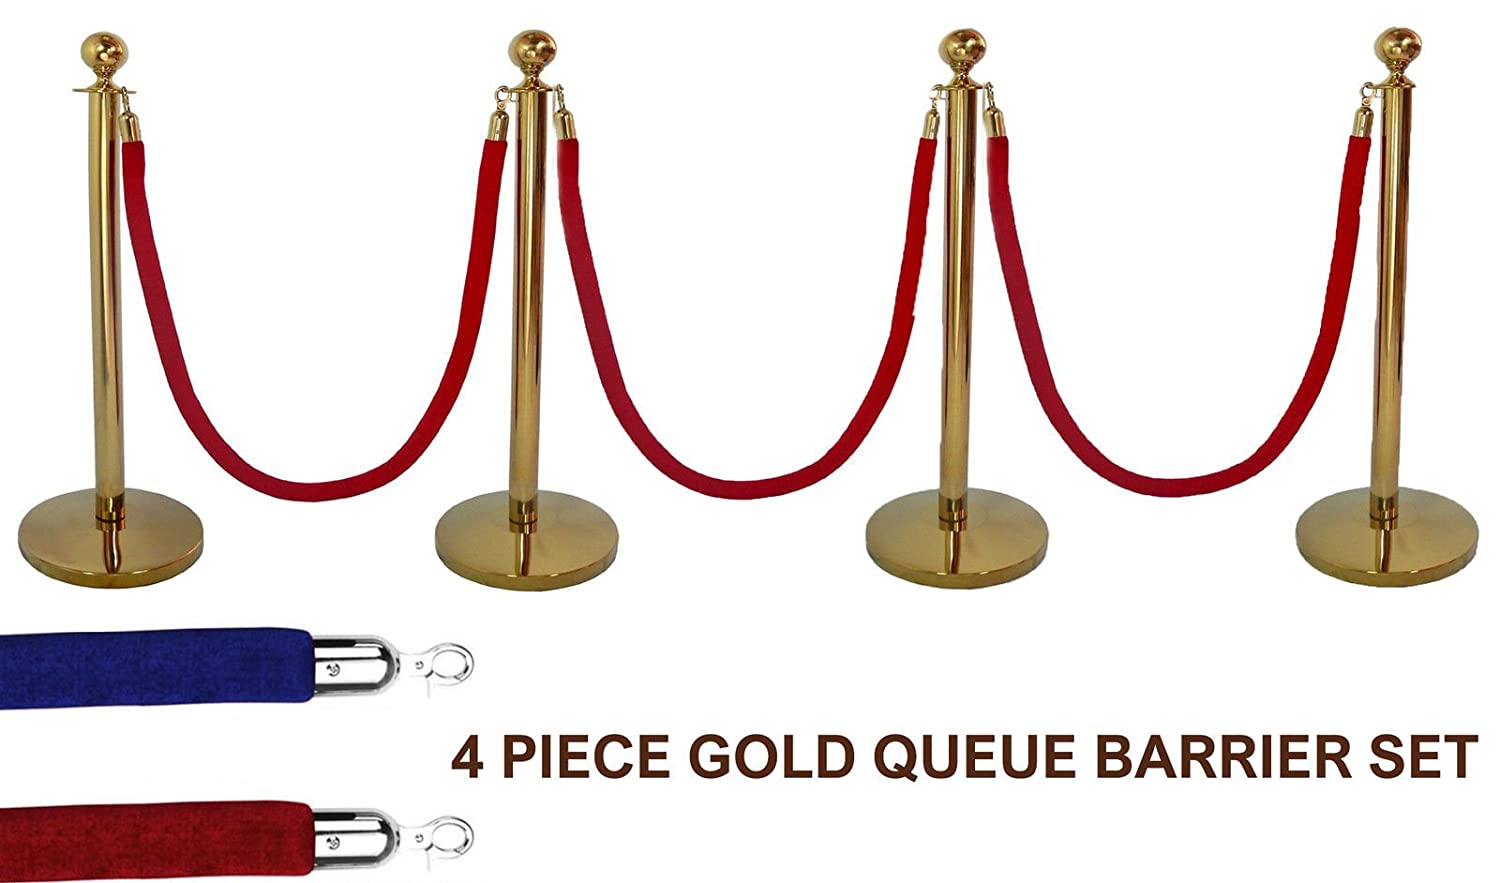 4 X BRASS QUEUE BARRIER POSTS SECURITY STANCHION ROPE DIVIDER STEEL SET GOLD BWUK